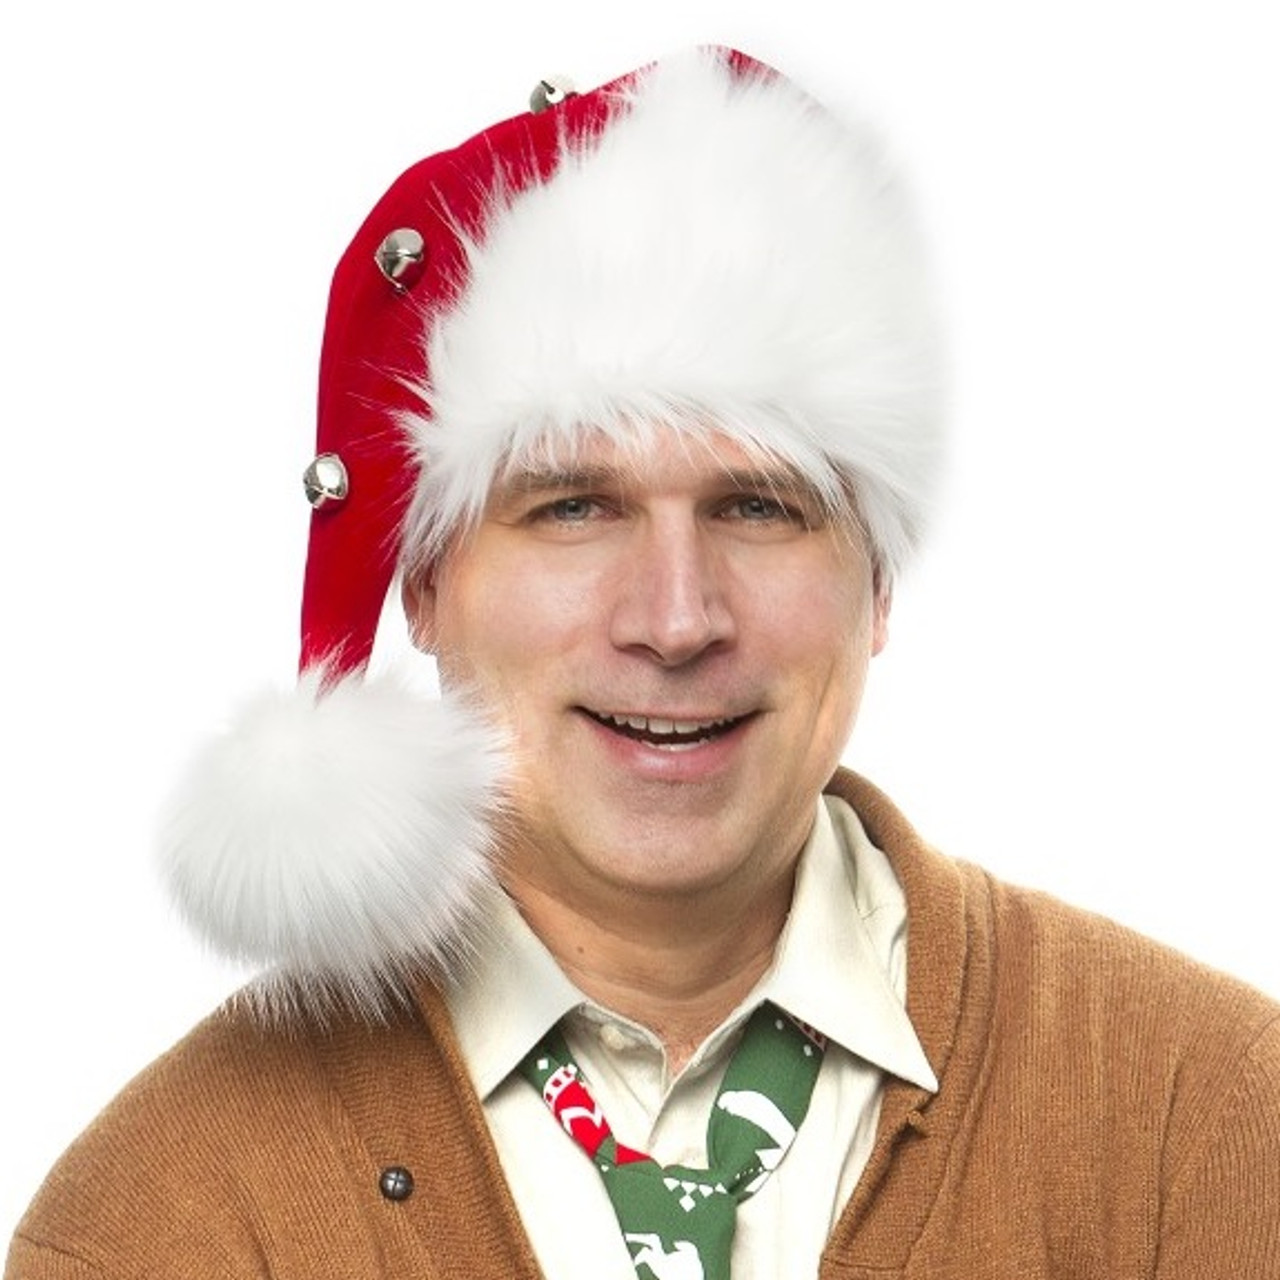 Clark Griswold Christmas Vacation.Clark Griswold S Ultimate Christmas Day Santa Hat